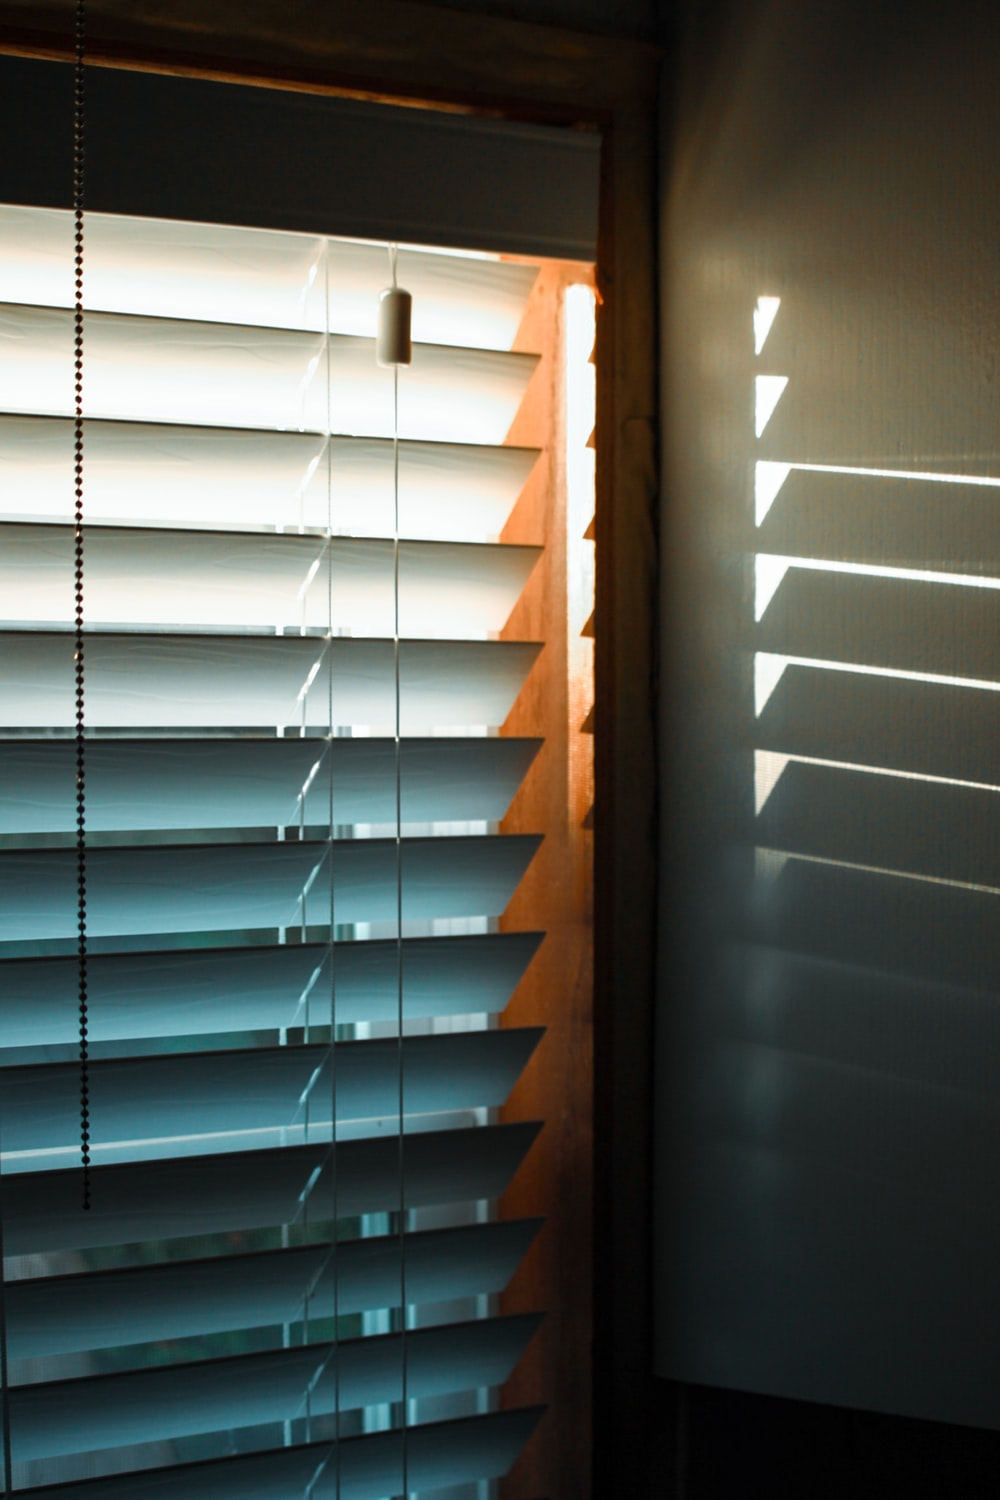 brown wooden window blinds during daytime